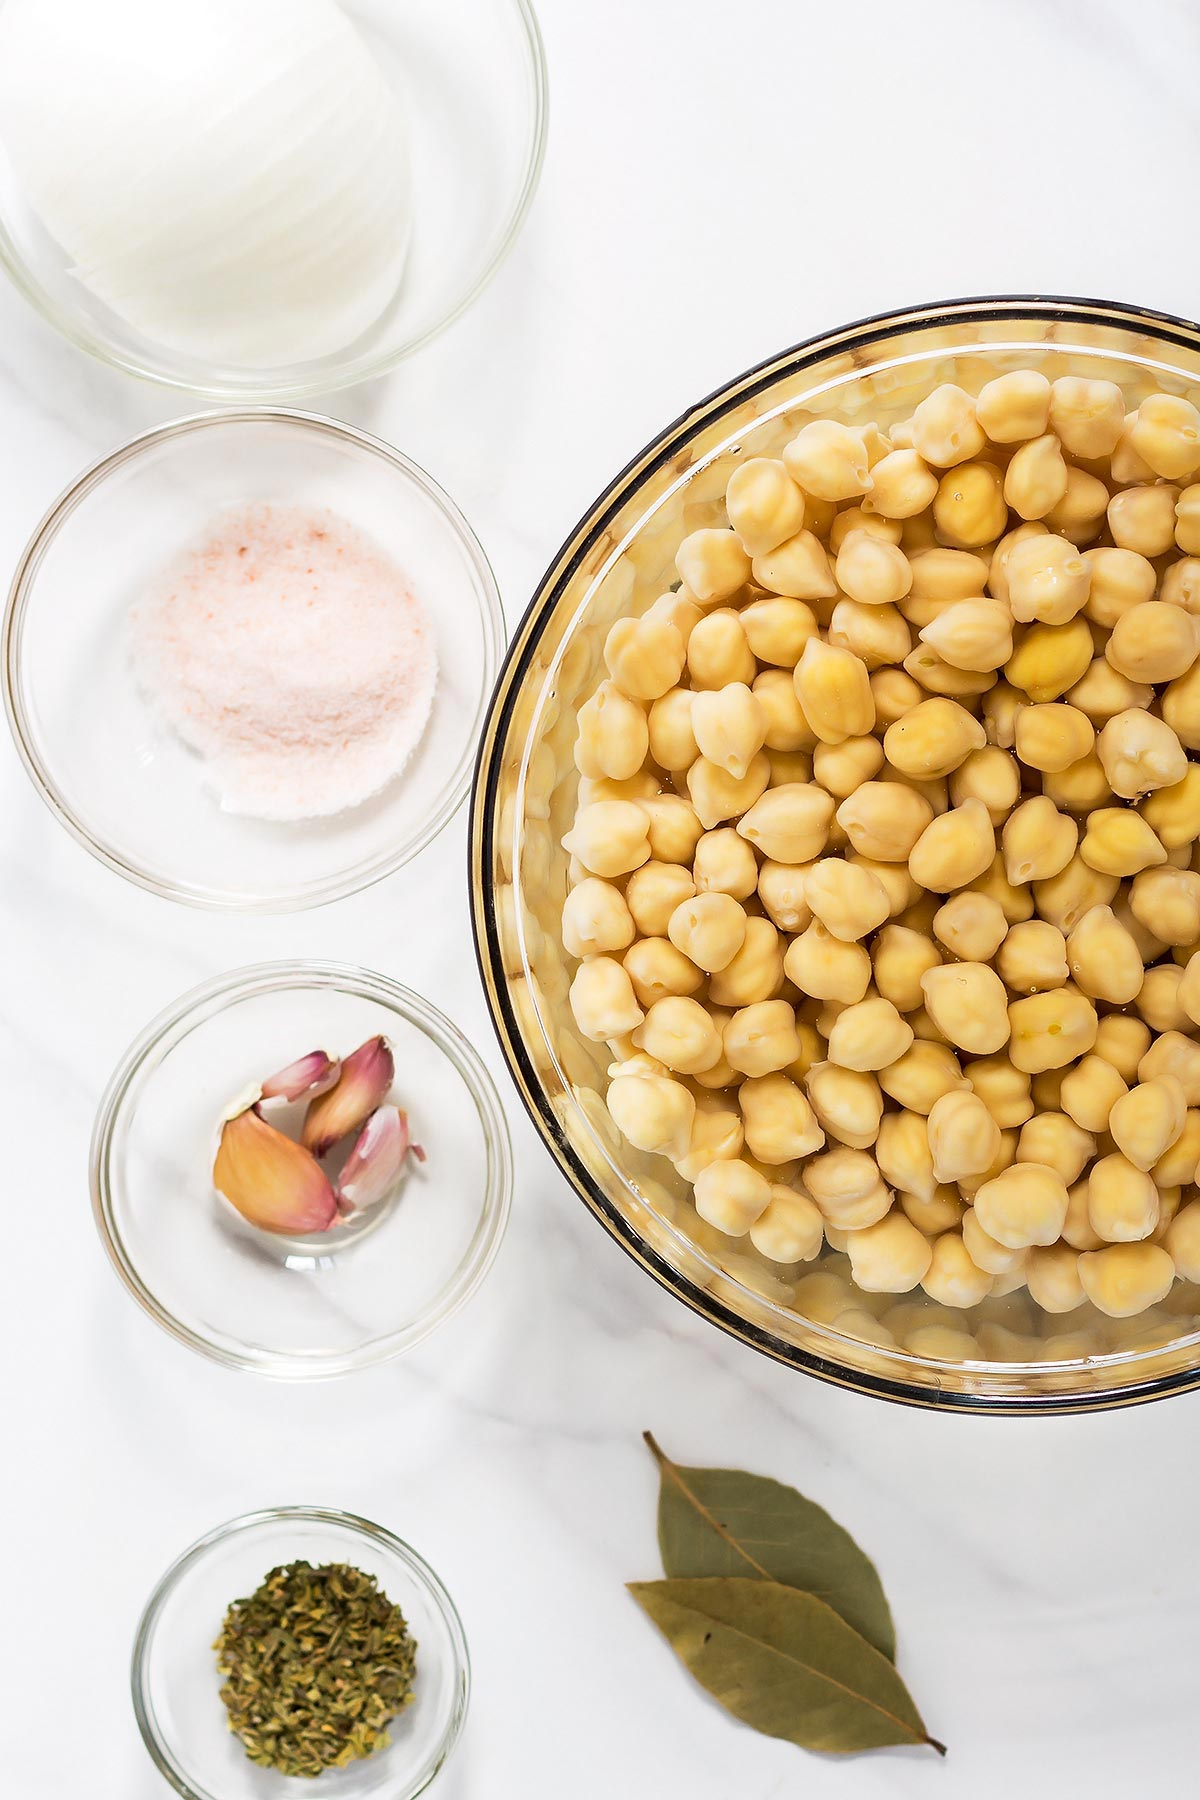 Ingredients for Pressure Cooker Chickpeas